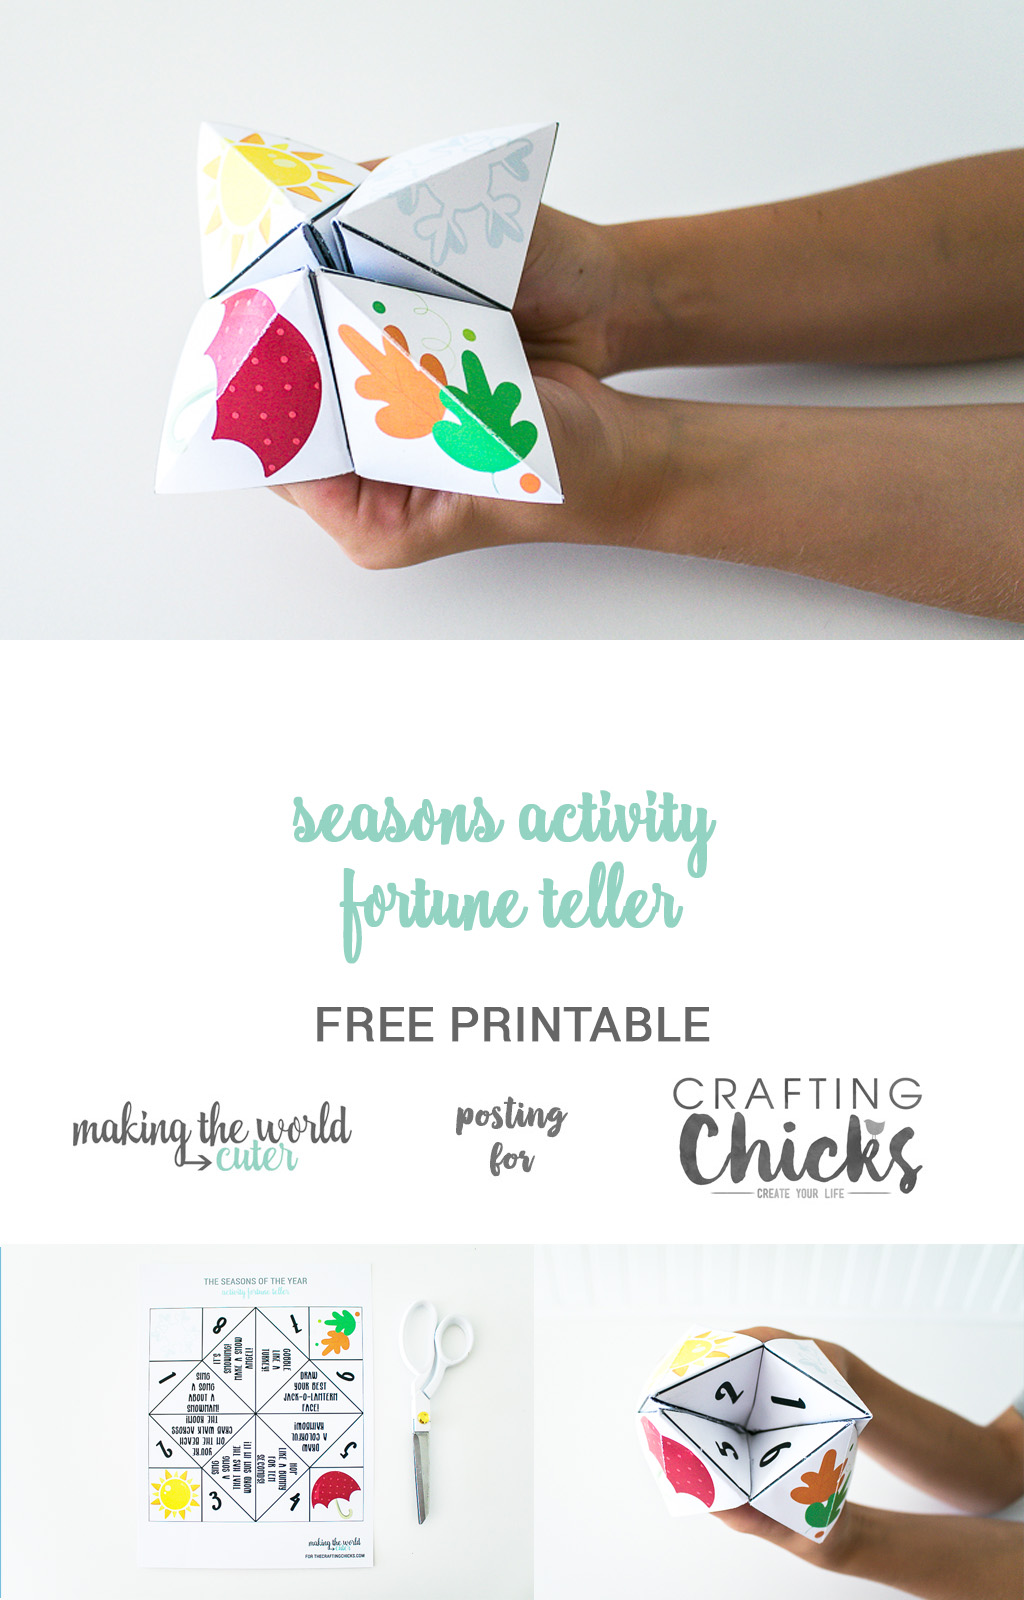 picture relating to Printable Fortune Teller named Seasons Game Fortune Teller Totally free Printable - The